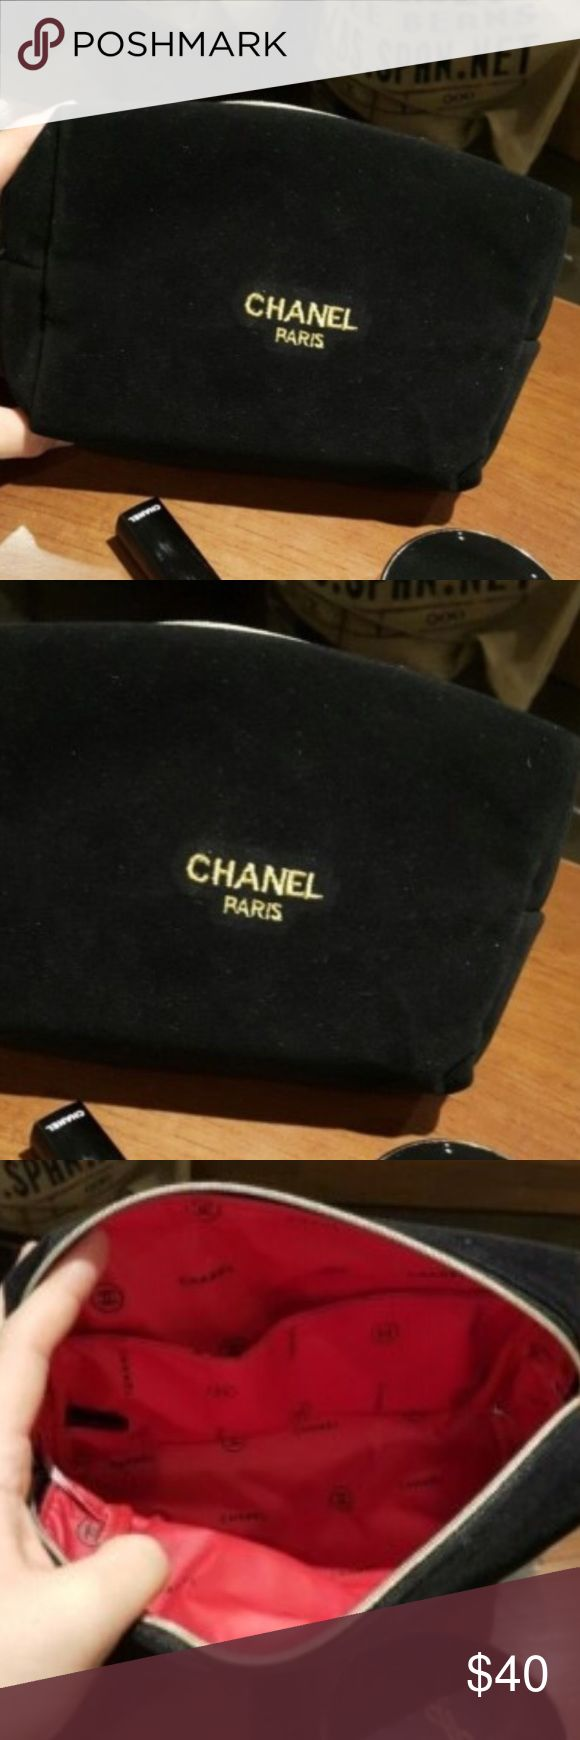 Chanel Beauty black velvet Cosmetic Makeup pouch Chanel Beauty velvet Cosmetic Makeup Bags pouch VIP Gift NEW                   Delivery up to 15-20       ❤️bundle discount❤️ Makeup Brushes & Tools